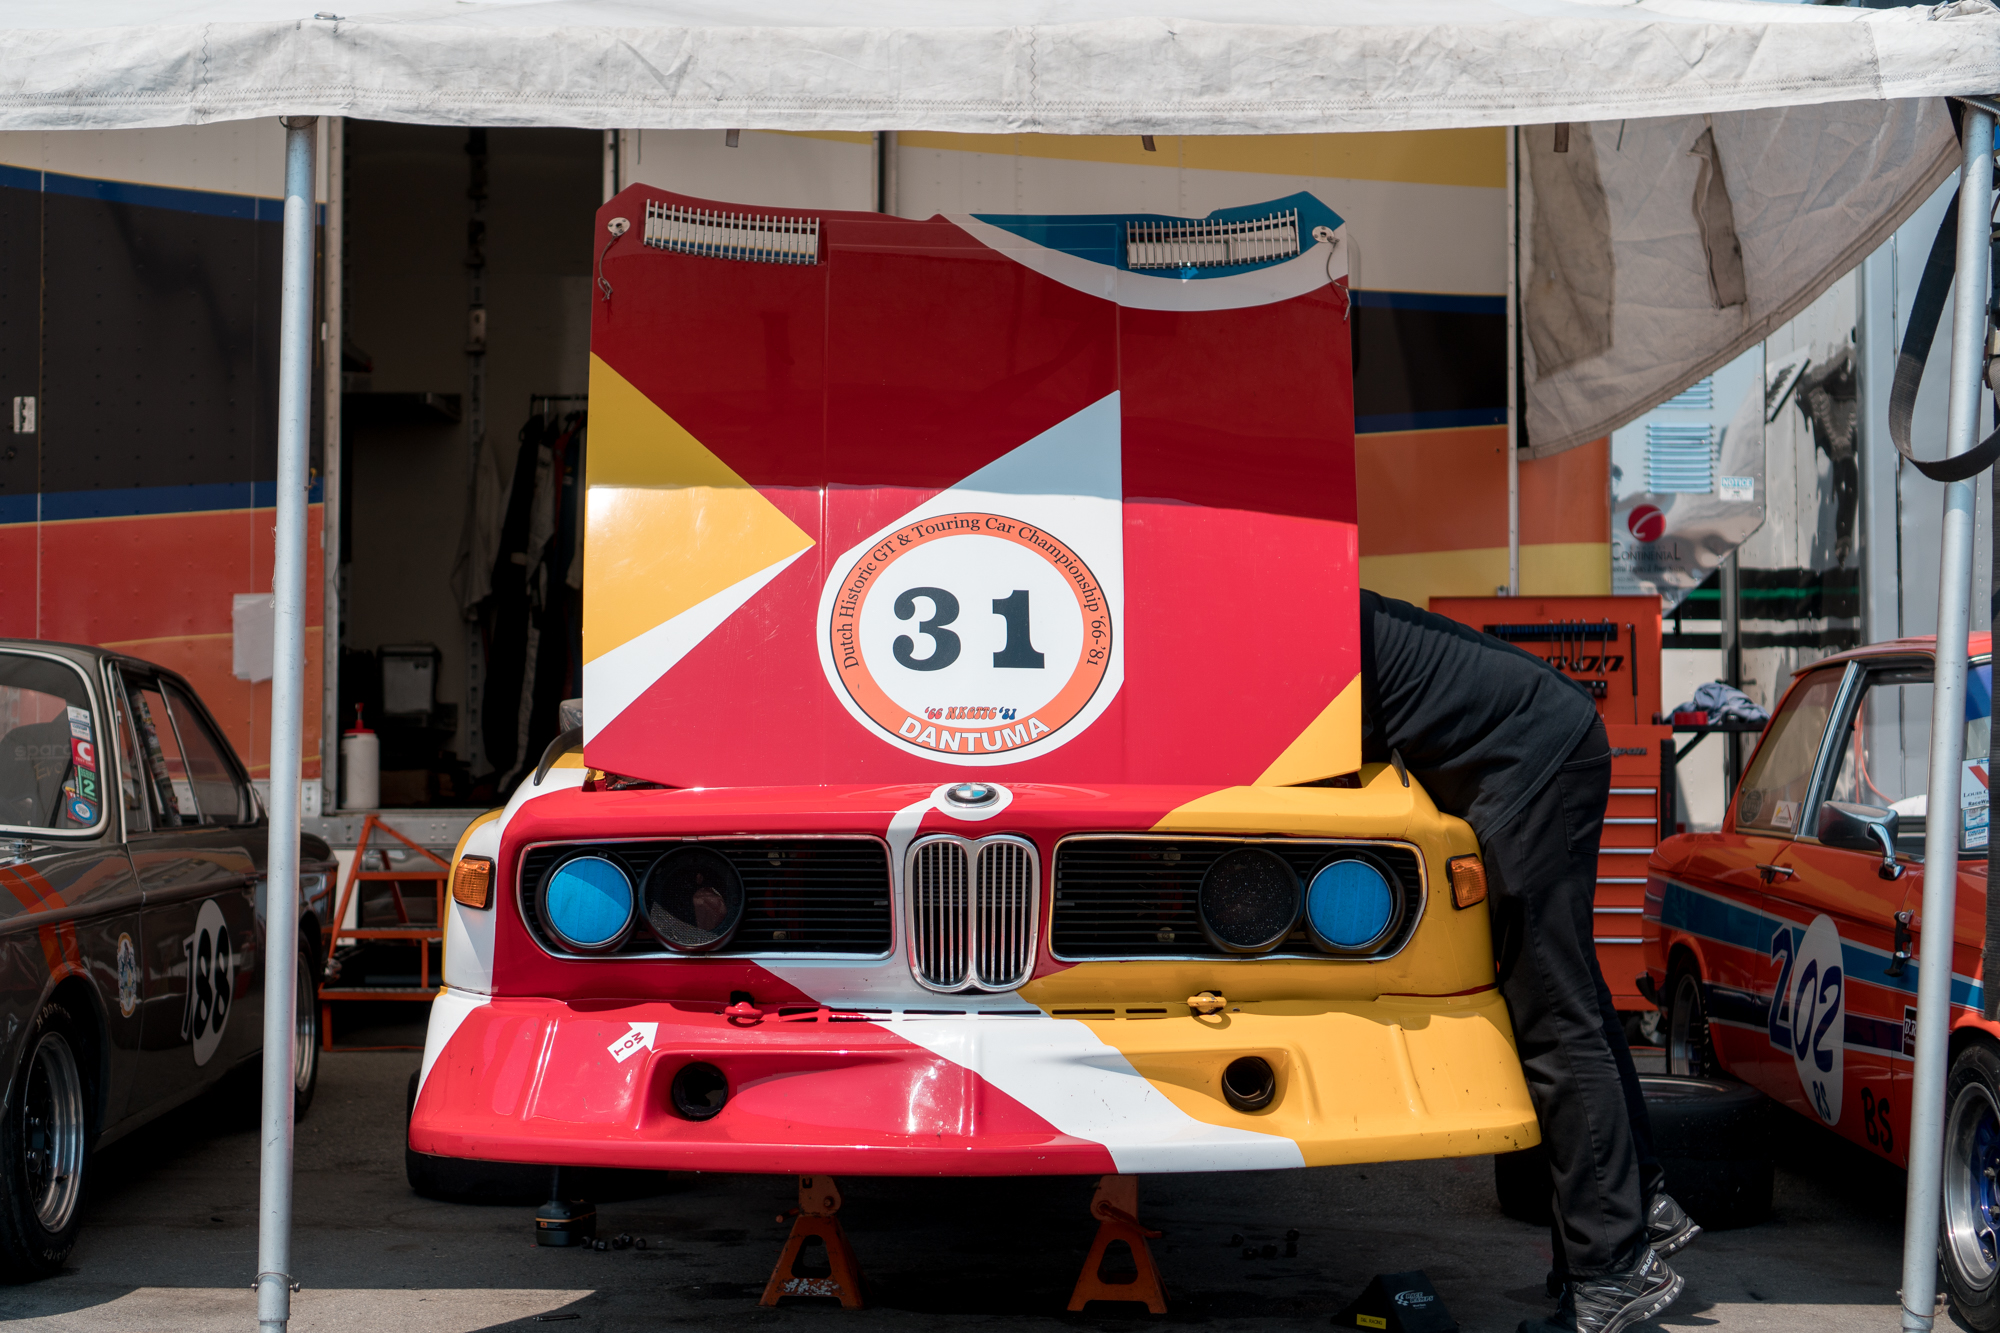 Monterey Car Week Wrap-Up and the Rolex Monterey Motorsports Reunion